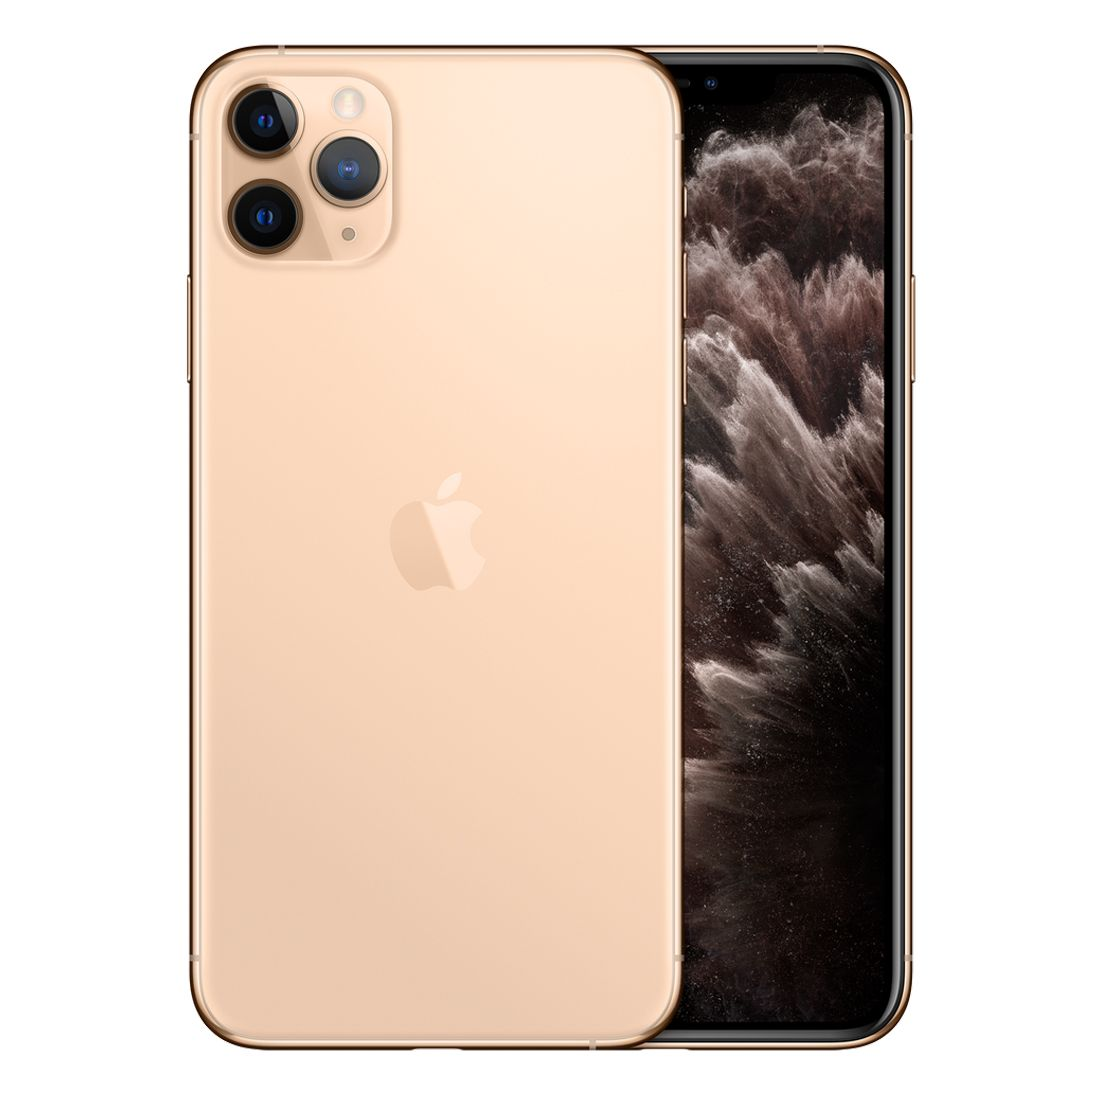 [Open Box - As New] Apple iPhone 11 Pro Max 256GB - Gold